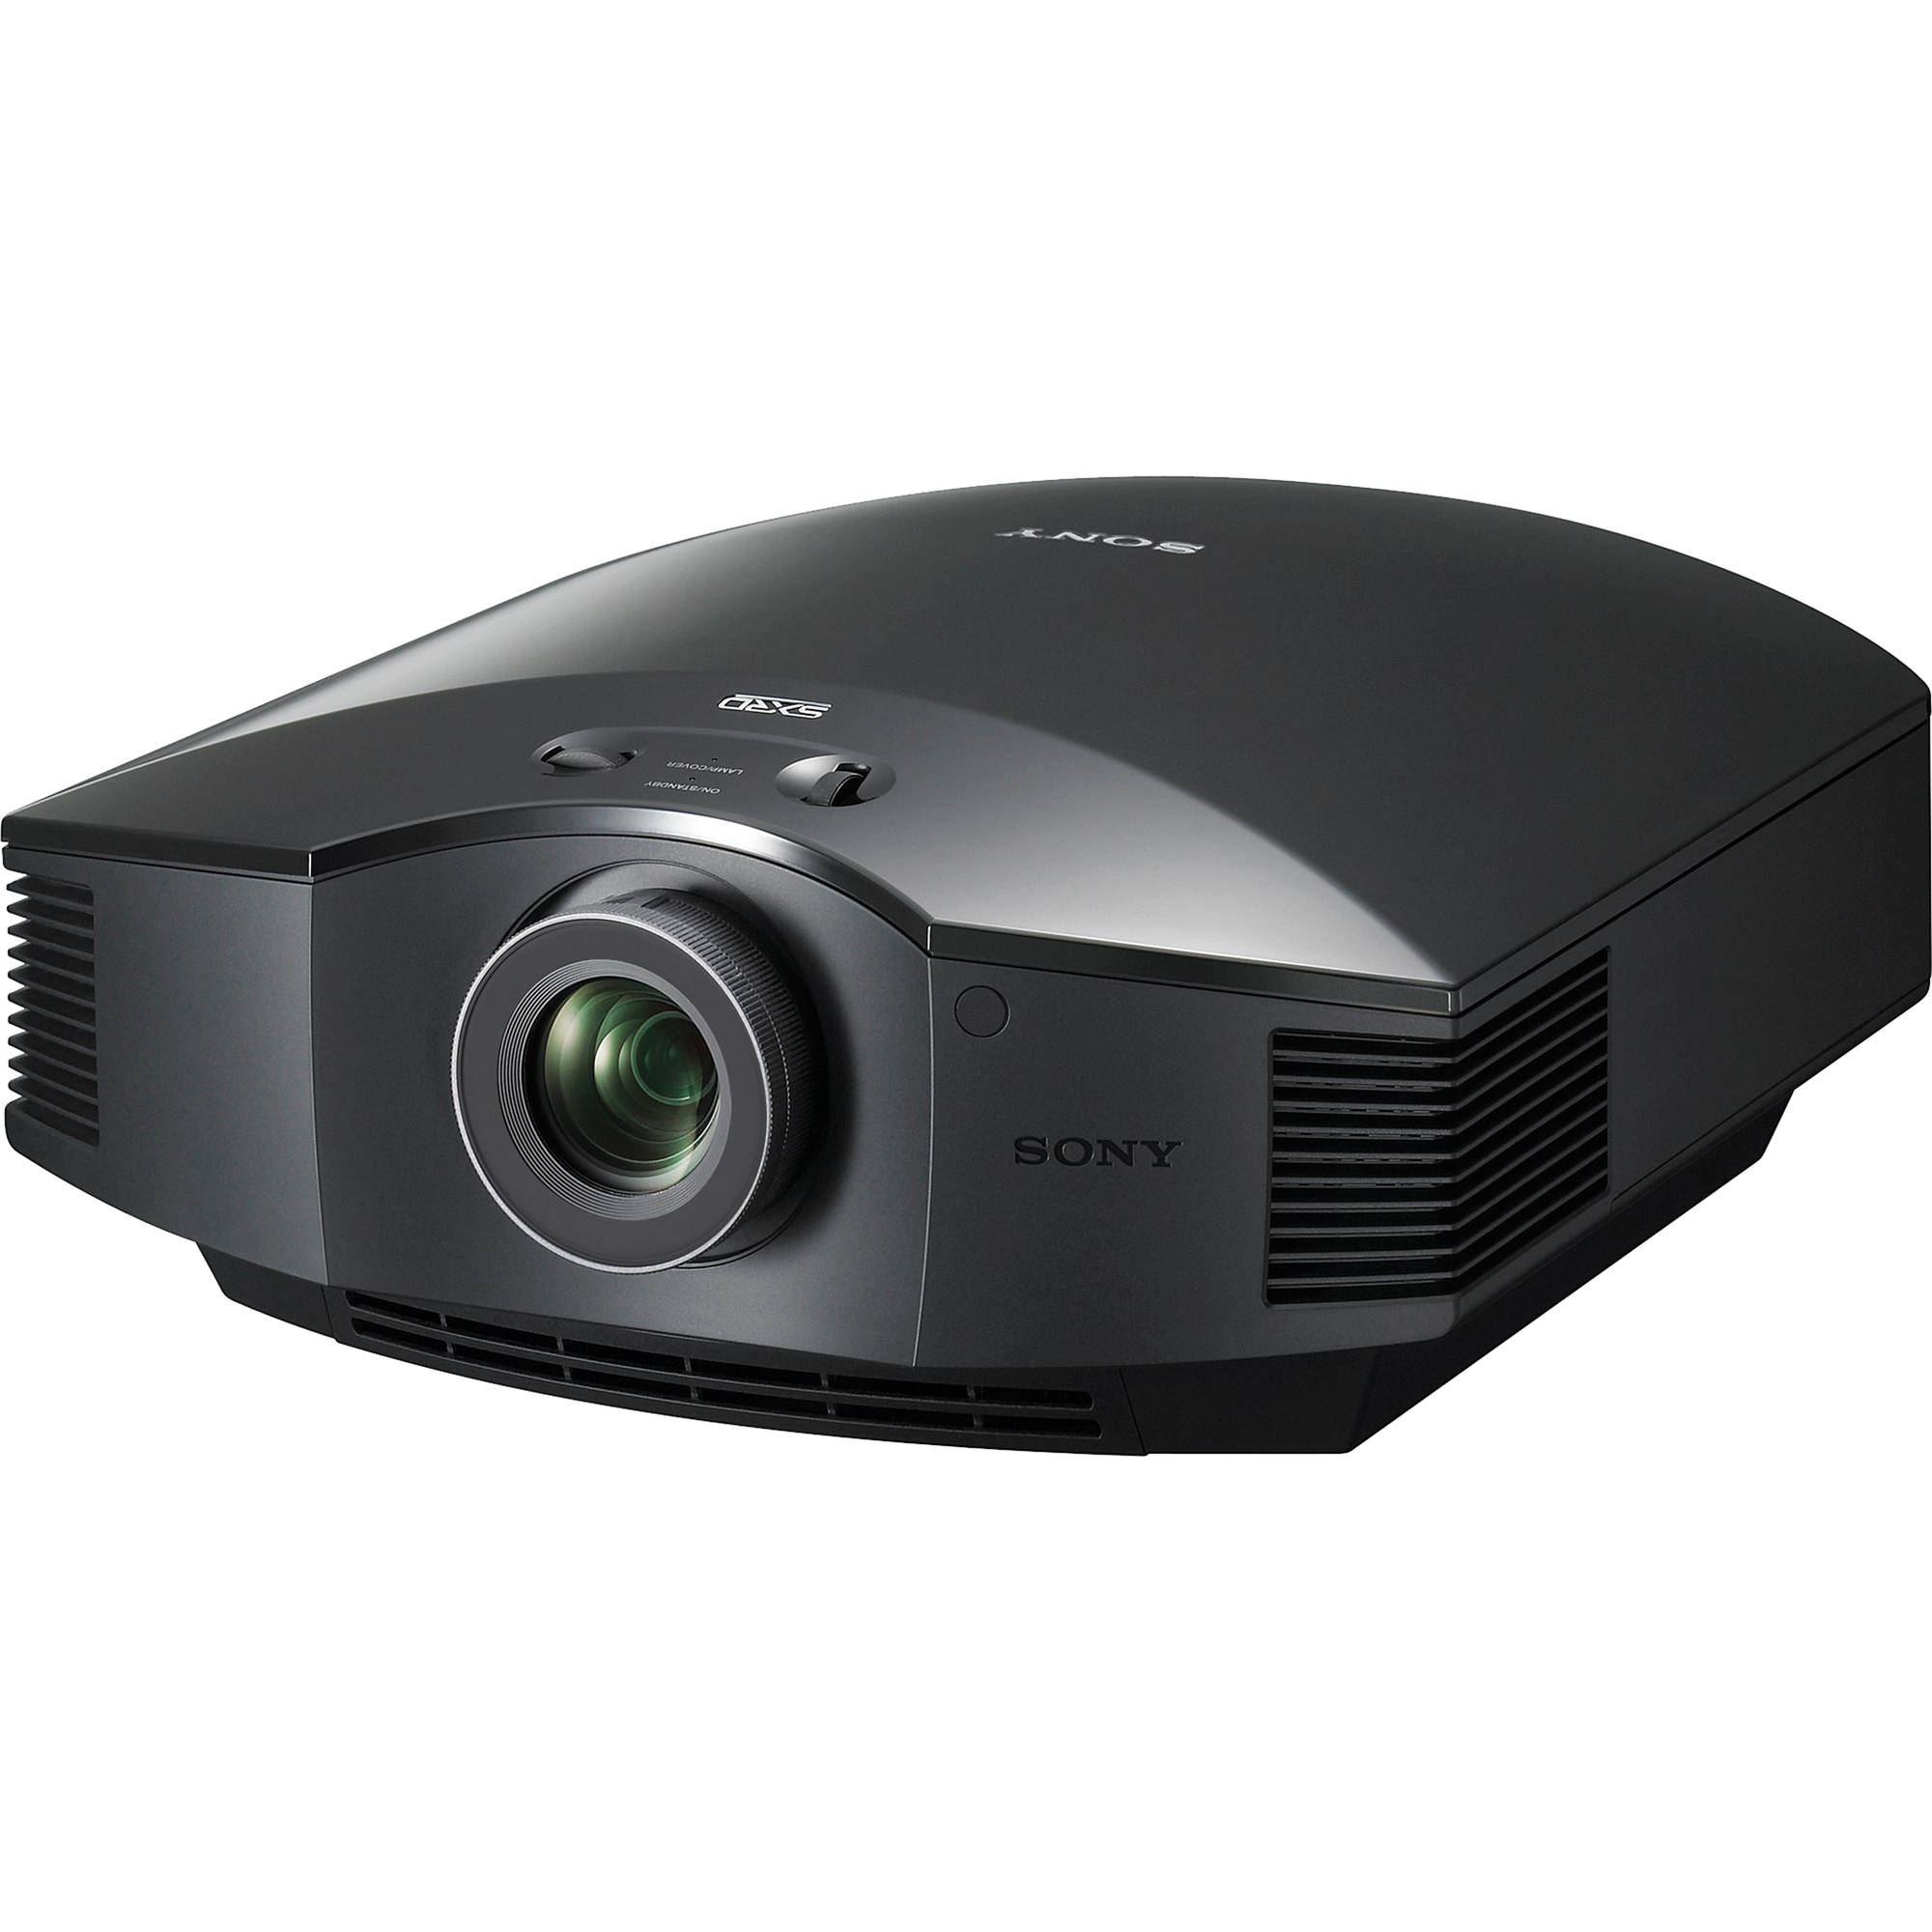 Sony Hd Video Camera With Projector Hdrpj410 Full Handycam Hdr Pj675 Camcorder Built In Pal Download